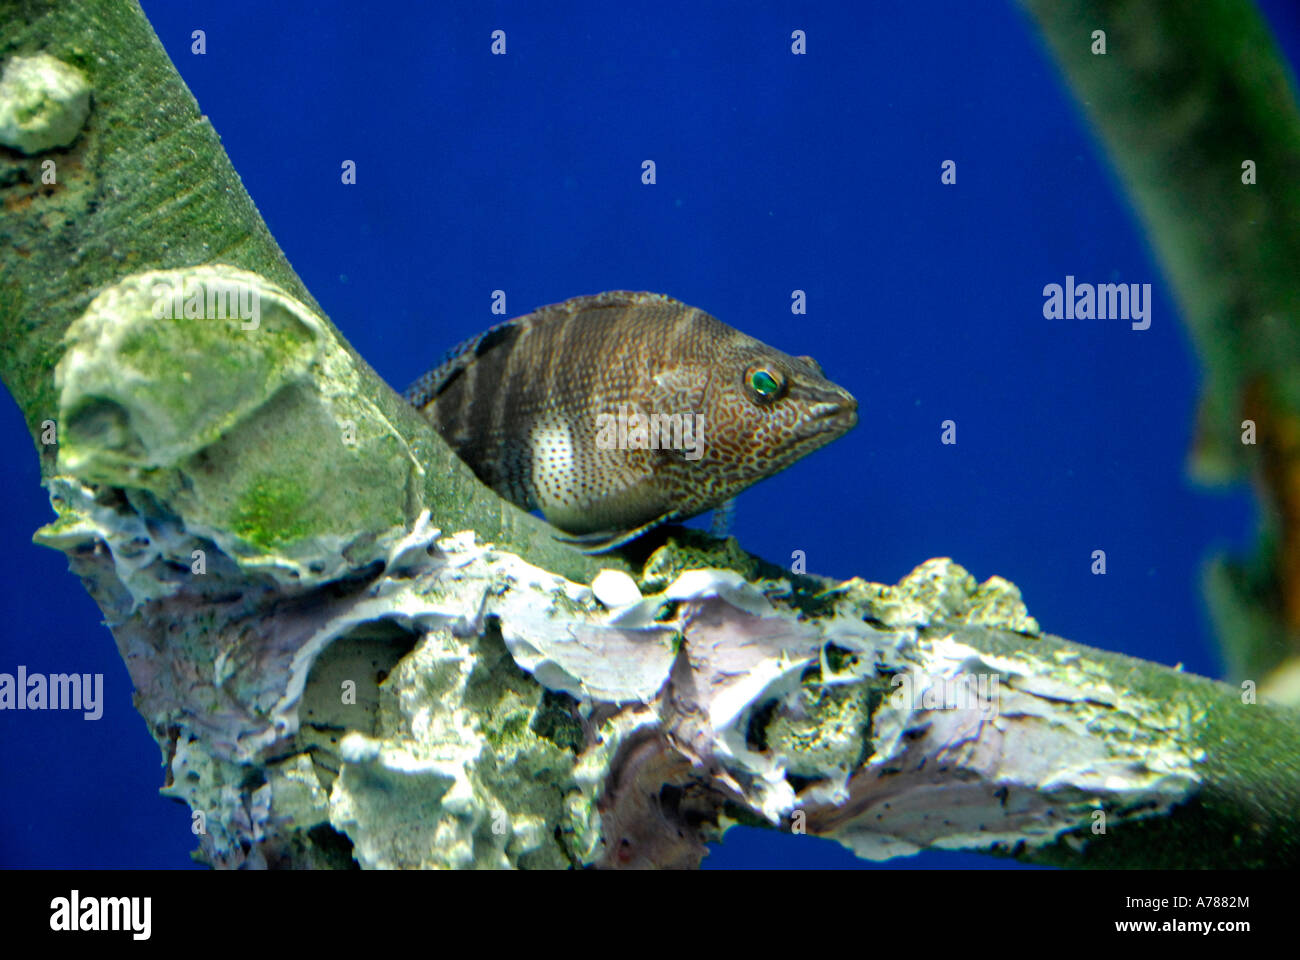 thousands of species of tropical fish and other aquatic animals are